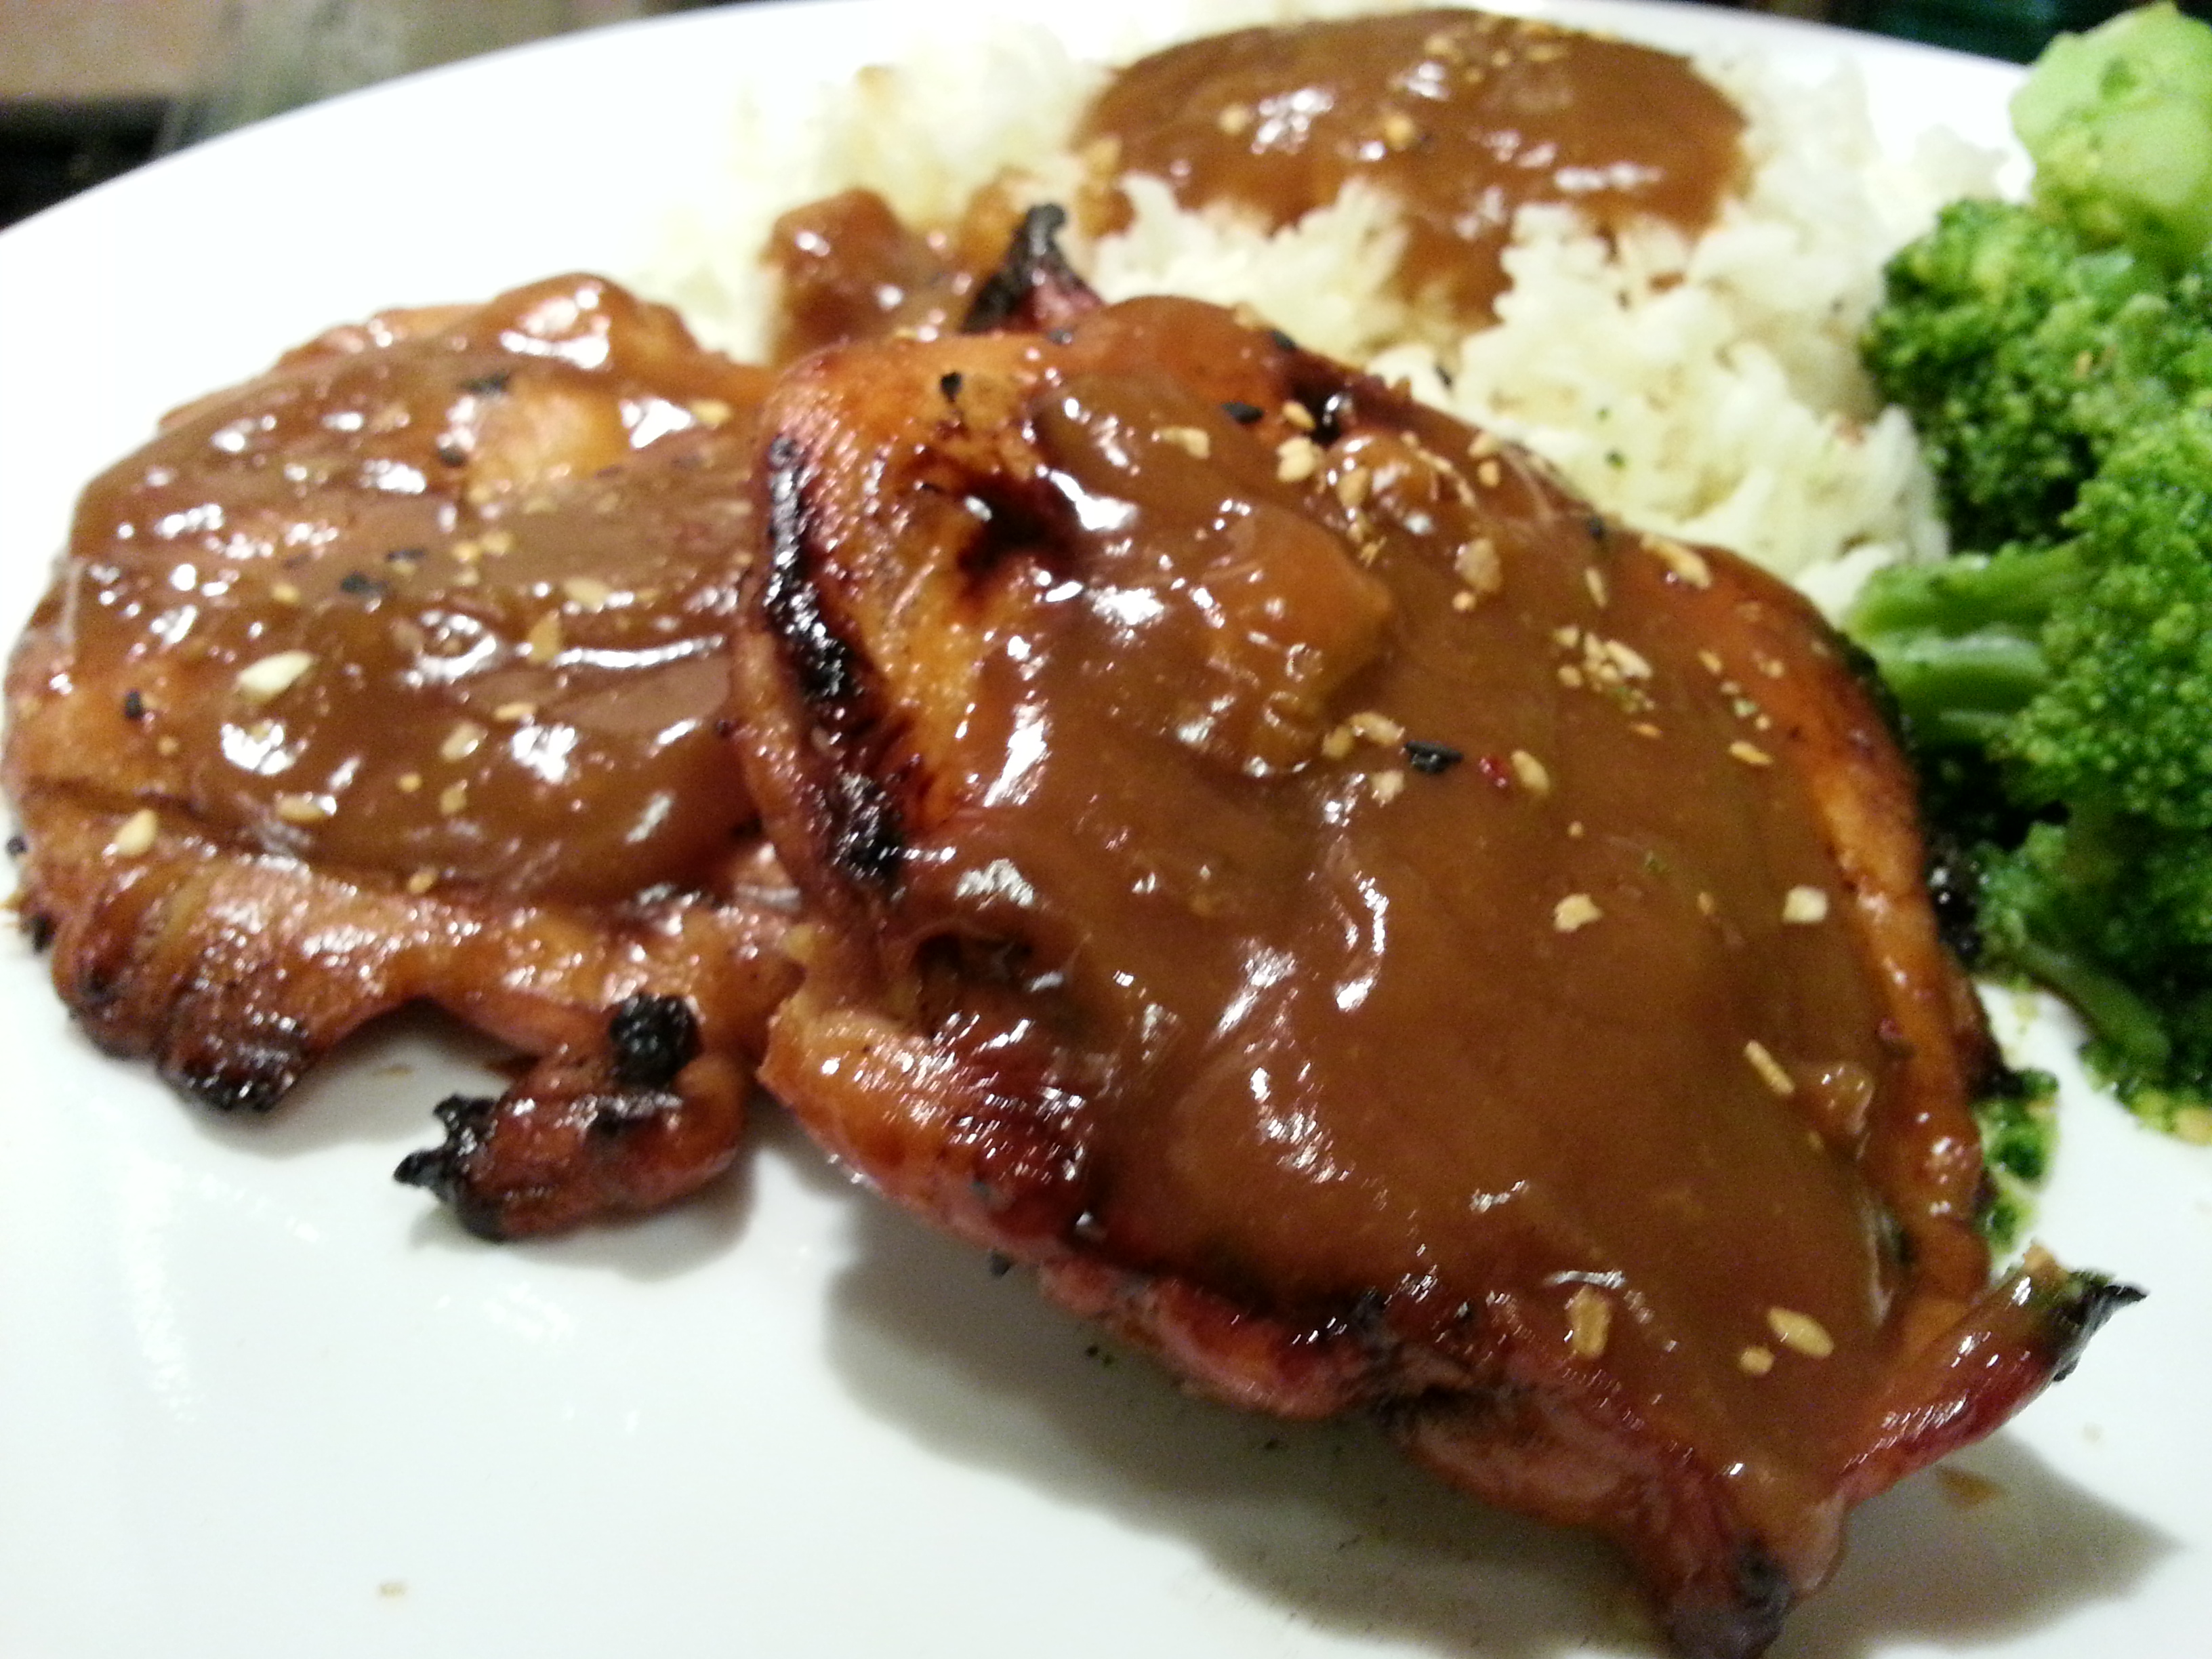 Thickened teriyaki sauce on meat and rice